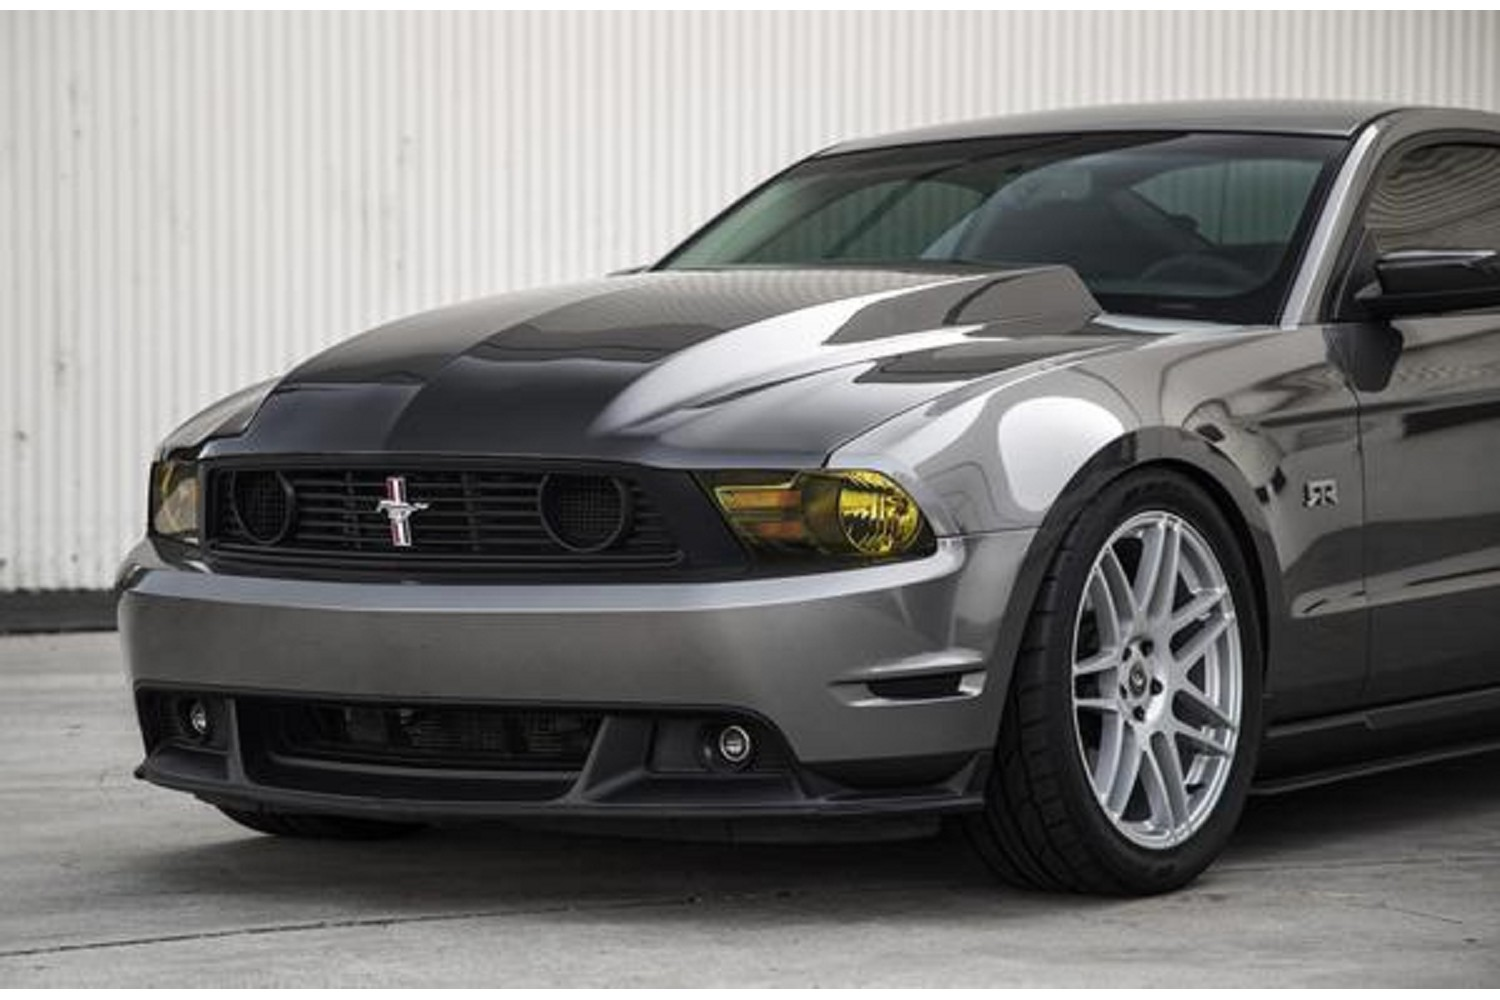 Anderson Composites Ford Mustang Type-CJ Carbon Fiber Cowl Hood (2010-2012)